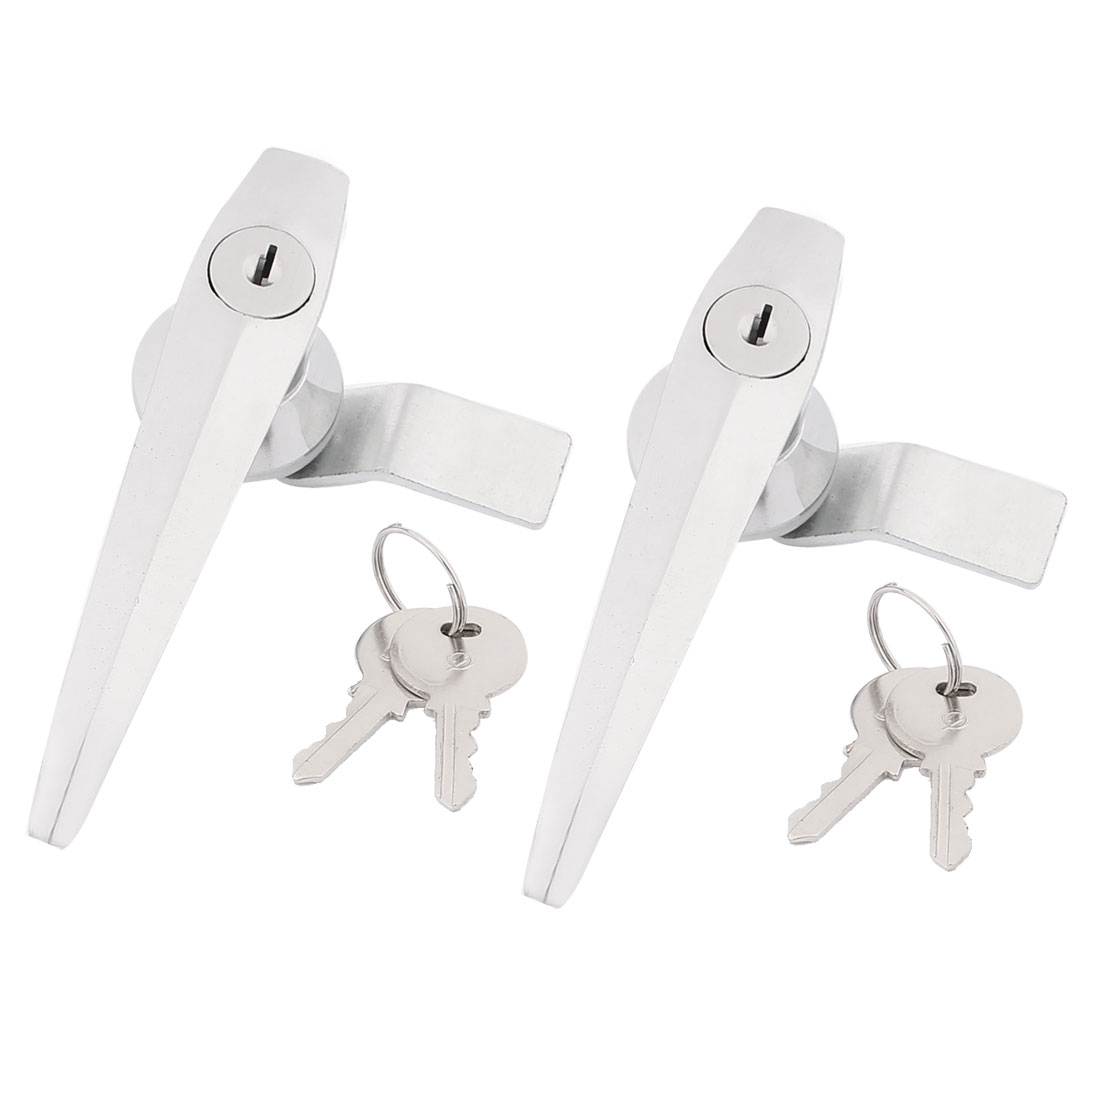 Home Safeguard Cabinet L Shaped Handle Metal Lever Lock w Keys 2Pcs